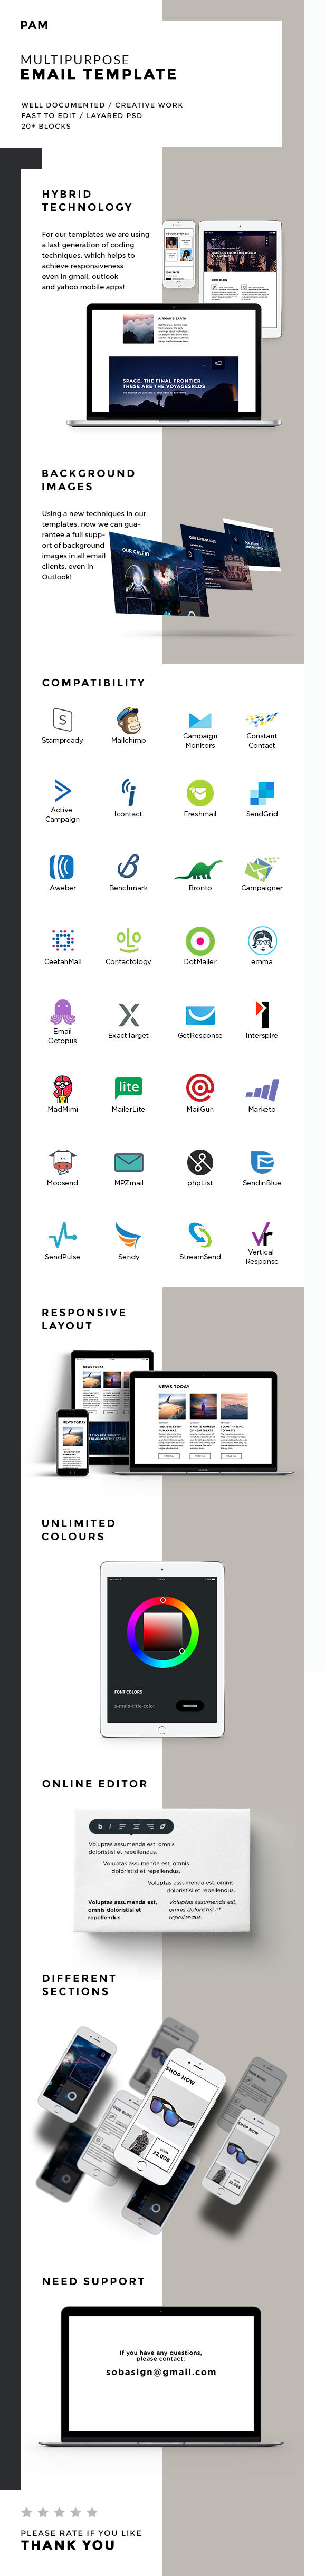 Pam – Responsive Multipurpose Email Template + Stampready Builder (Email Templates)